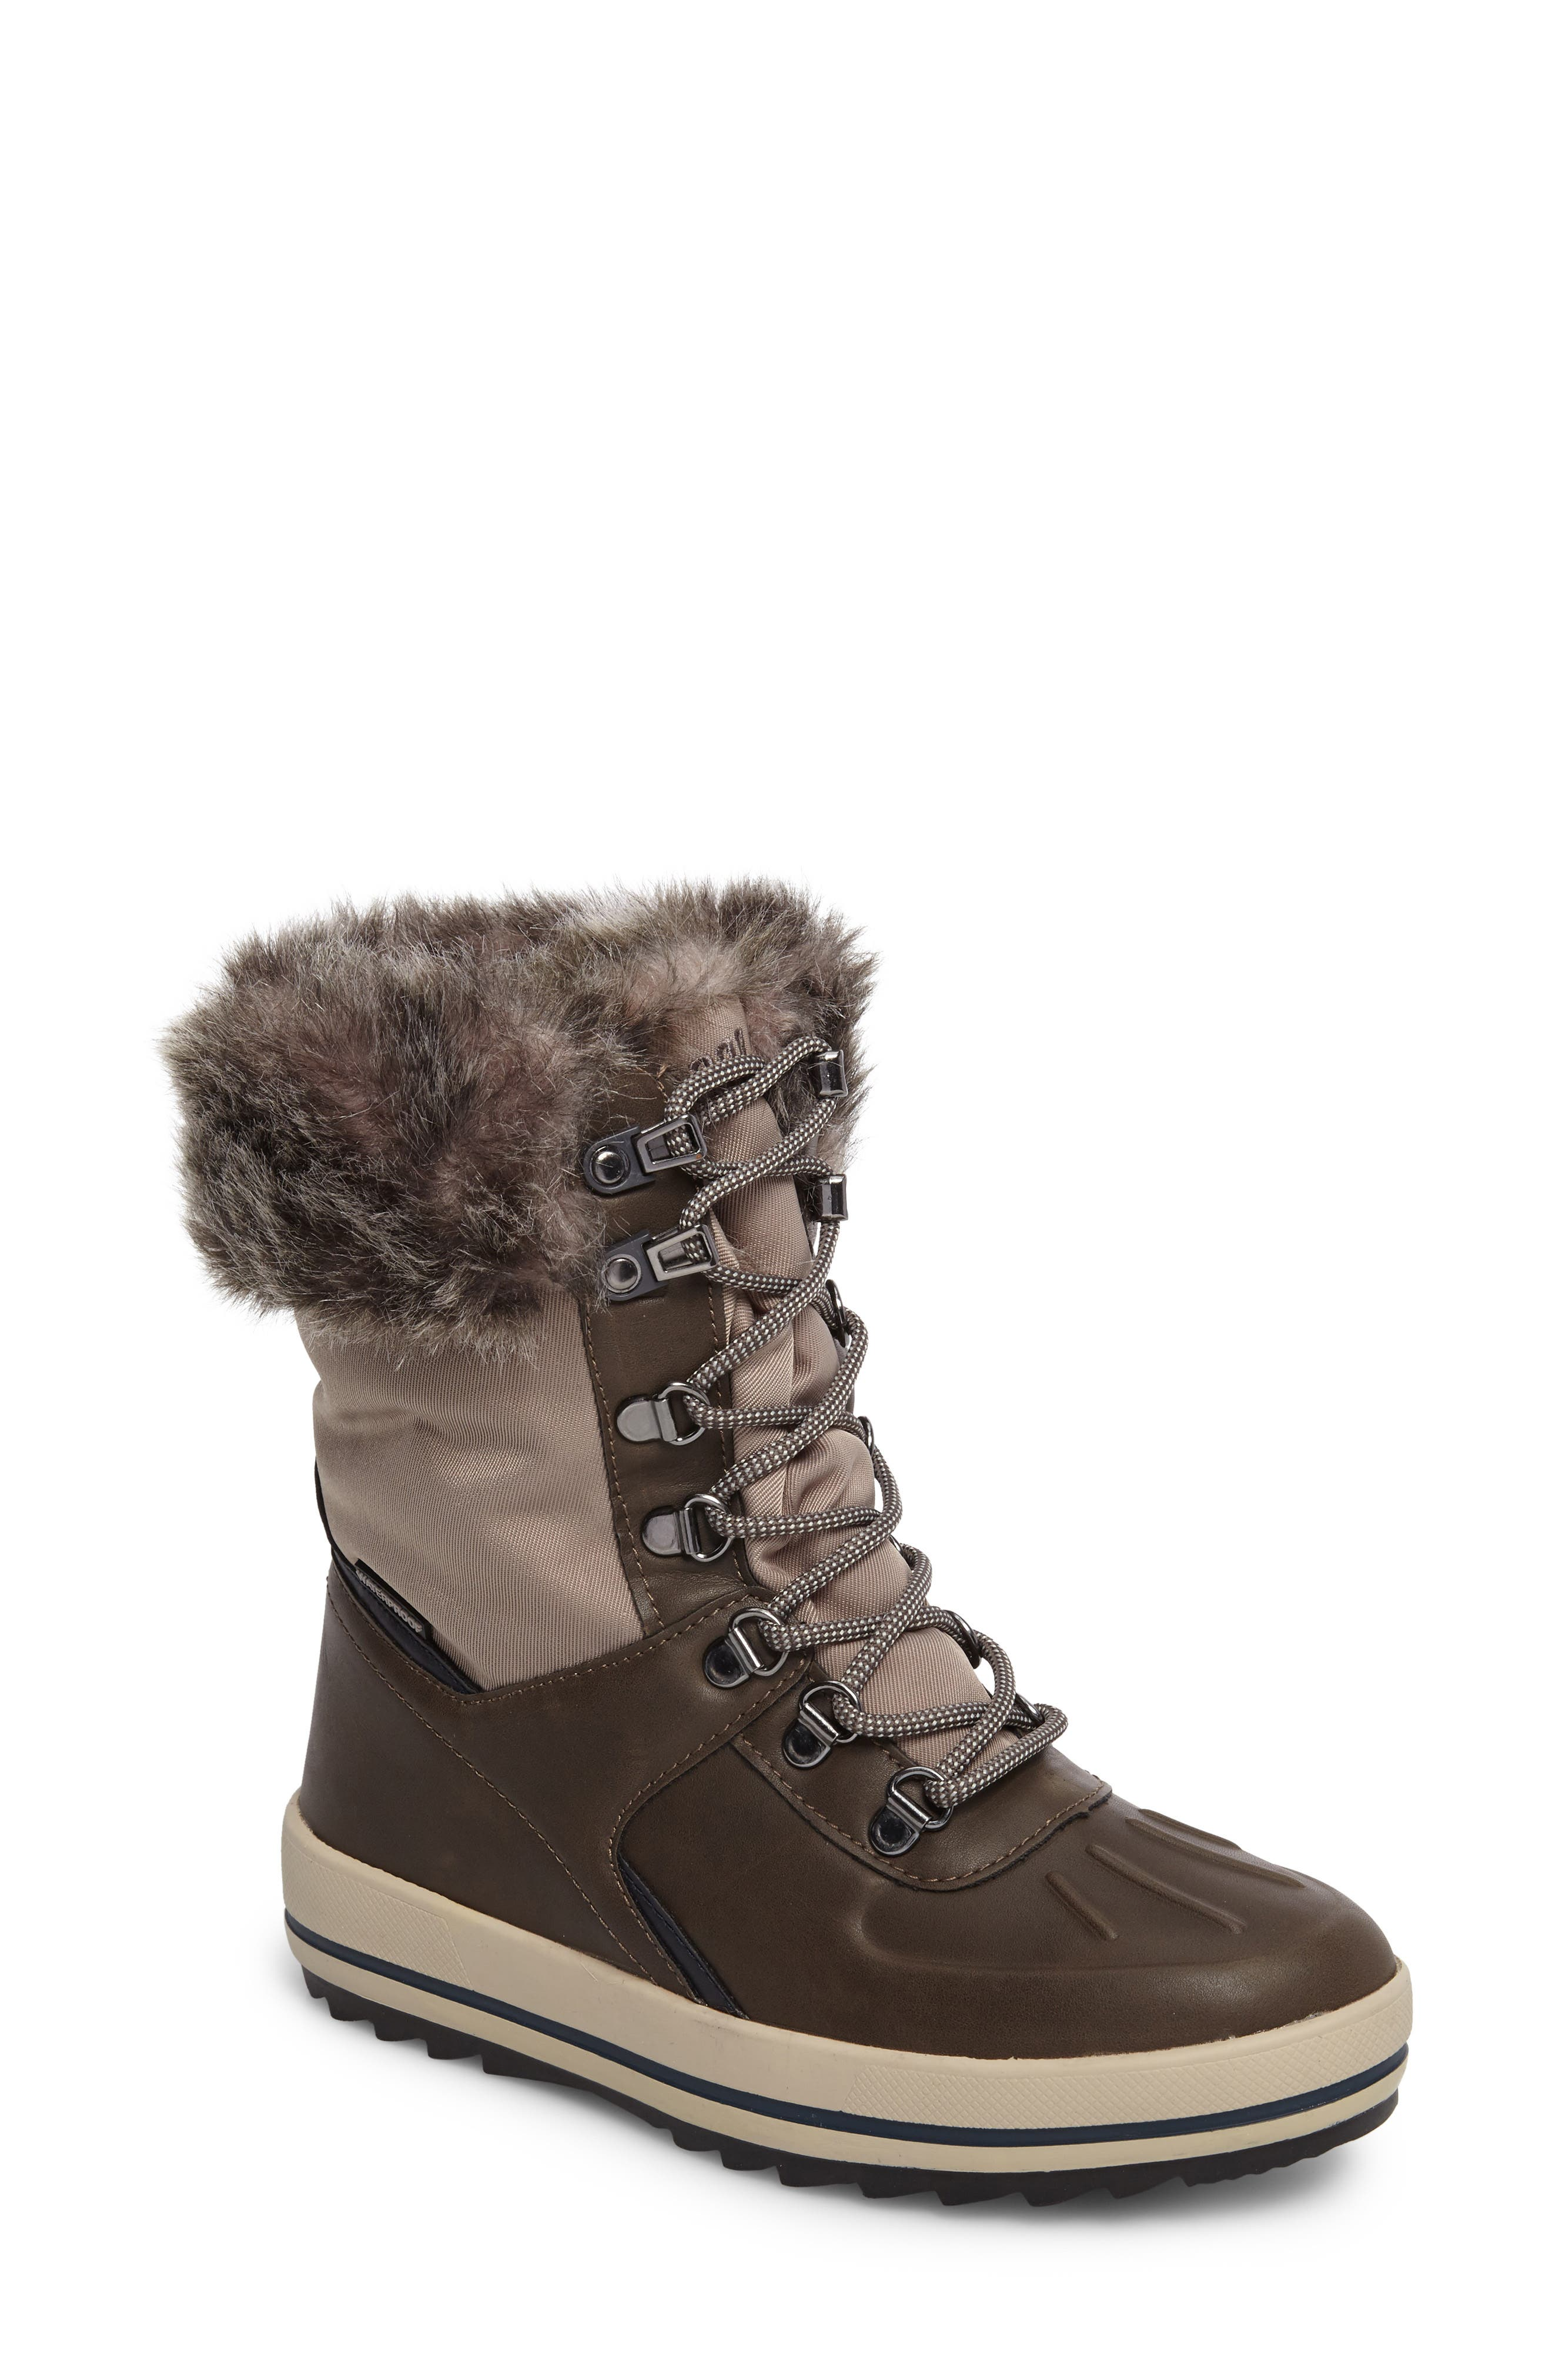 Viper Waterproof Snow Boot with Faux Fur Trim,                         Main,                         color, Taupe/ Oatmeal